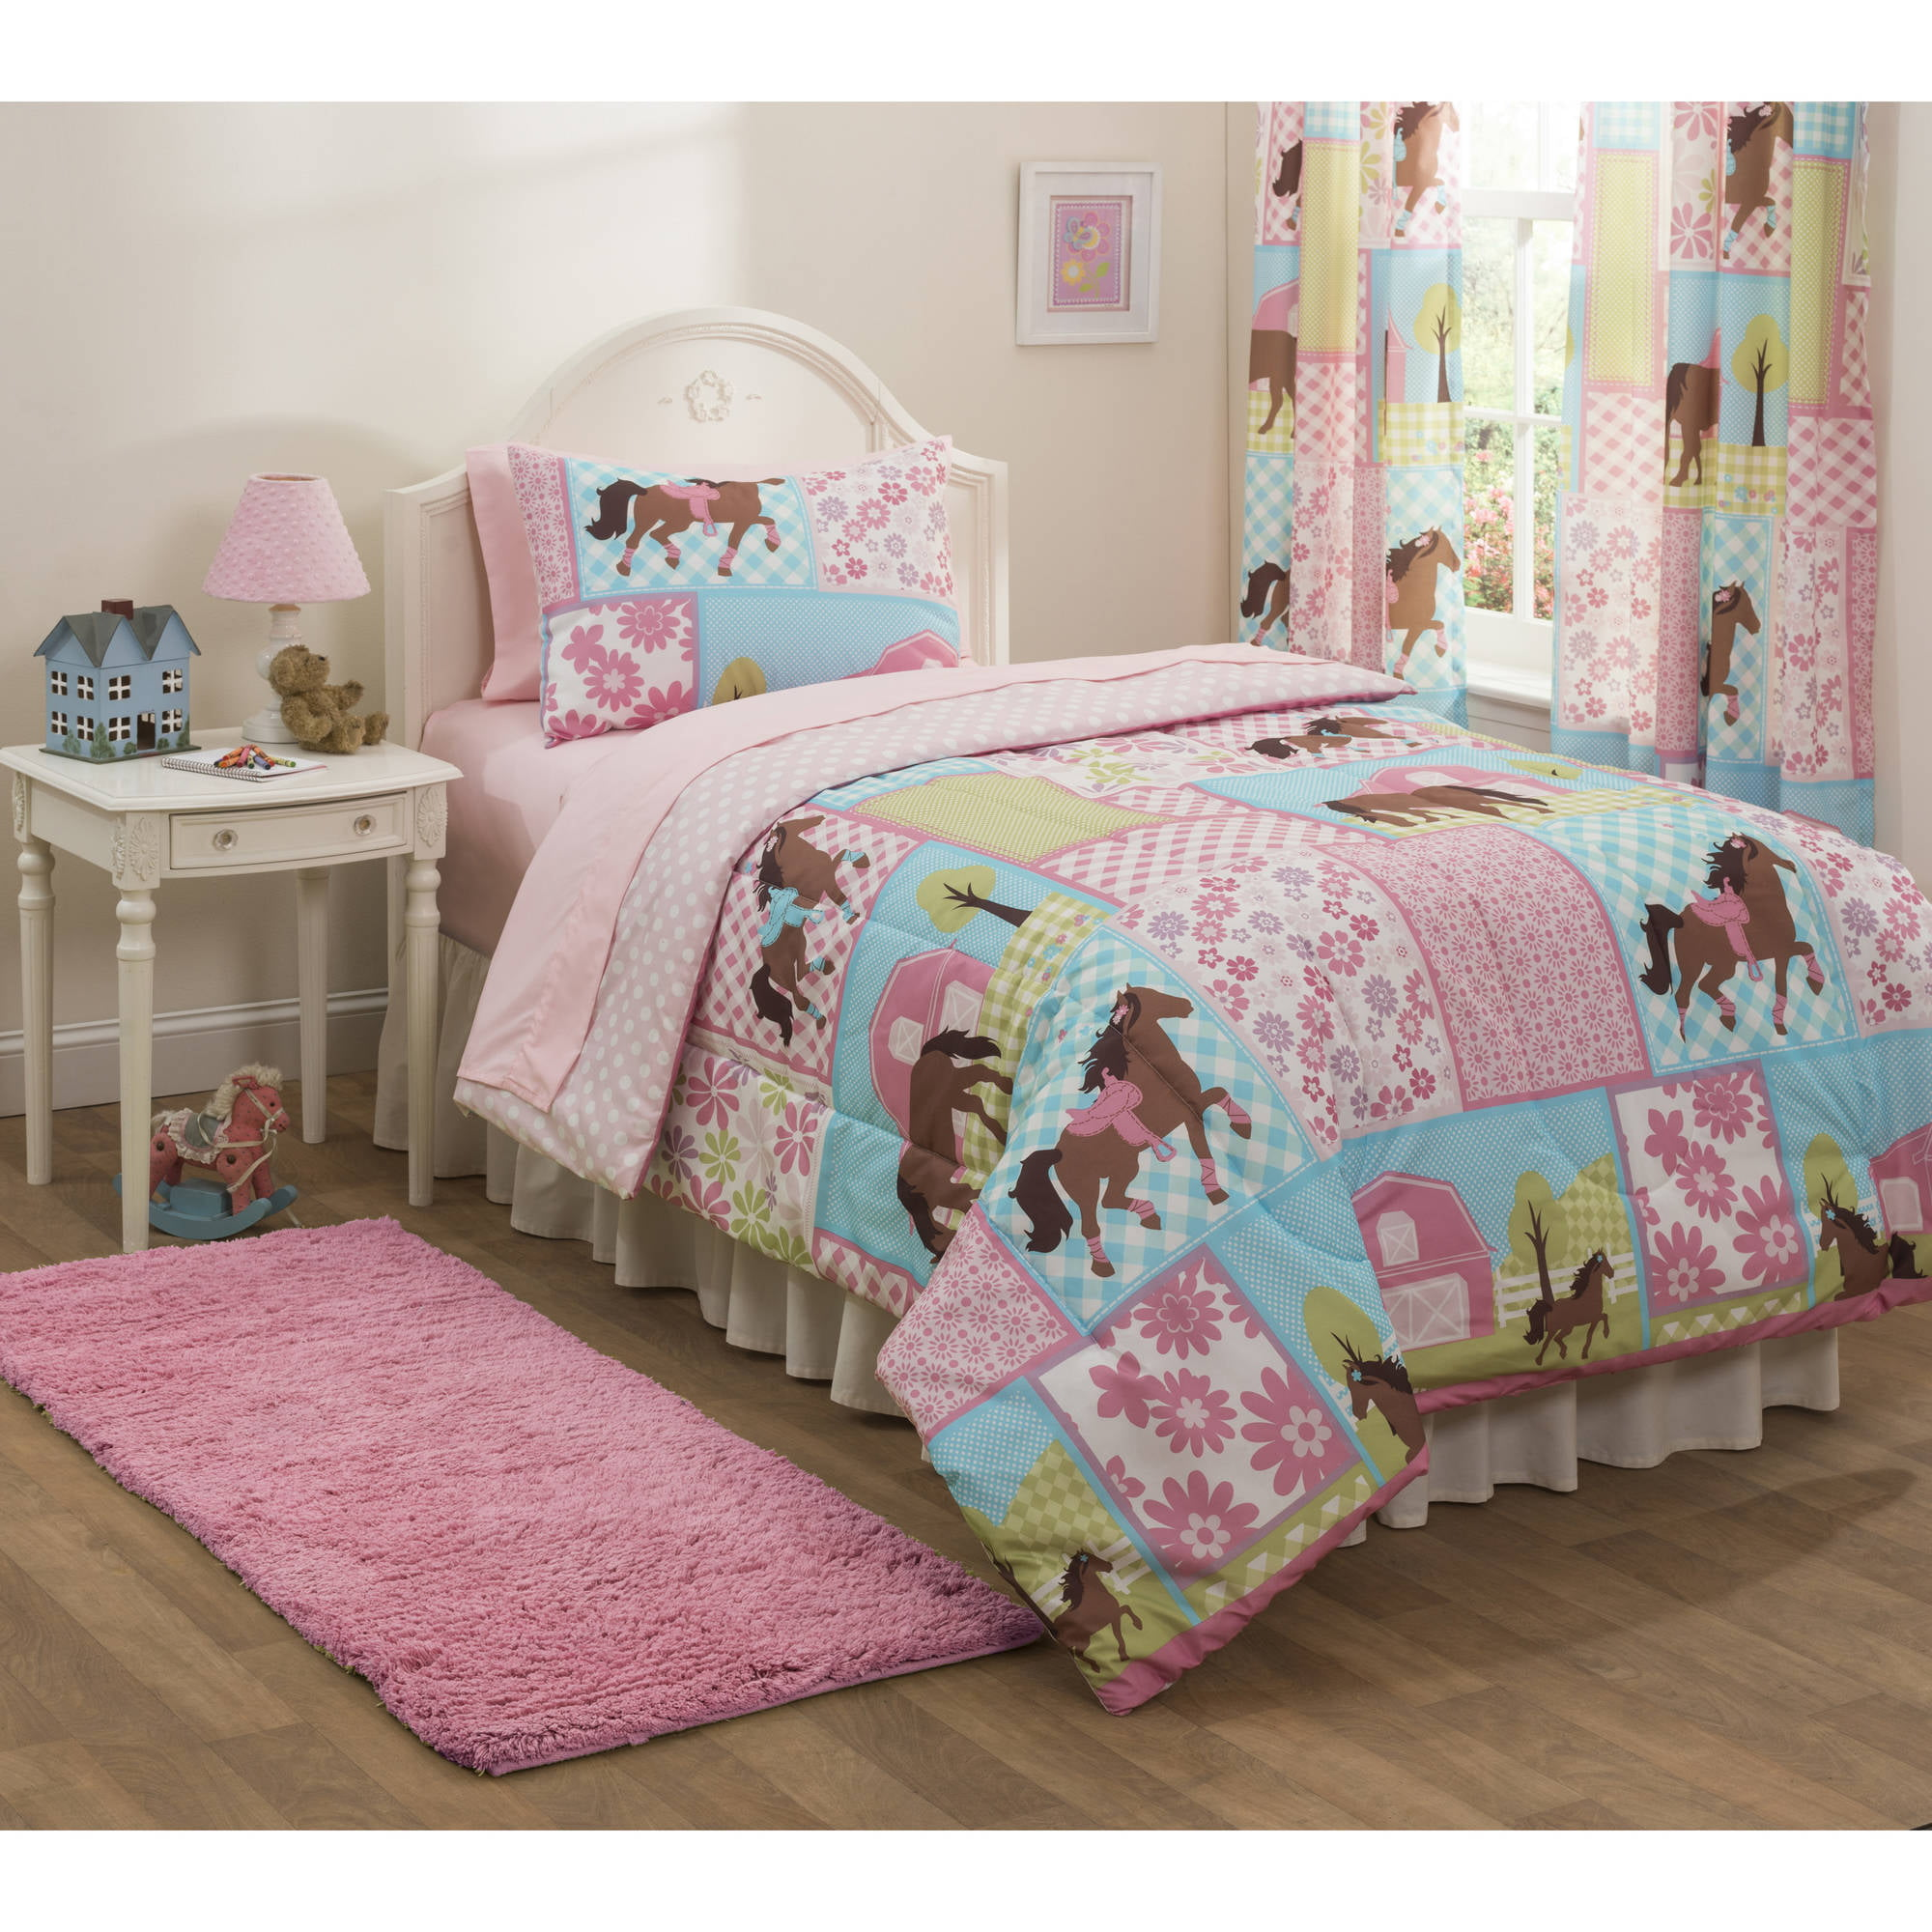 mainstays kids country meadows bed in a bag bedding set walmartcom - Horse Bedding